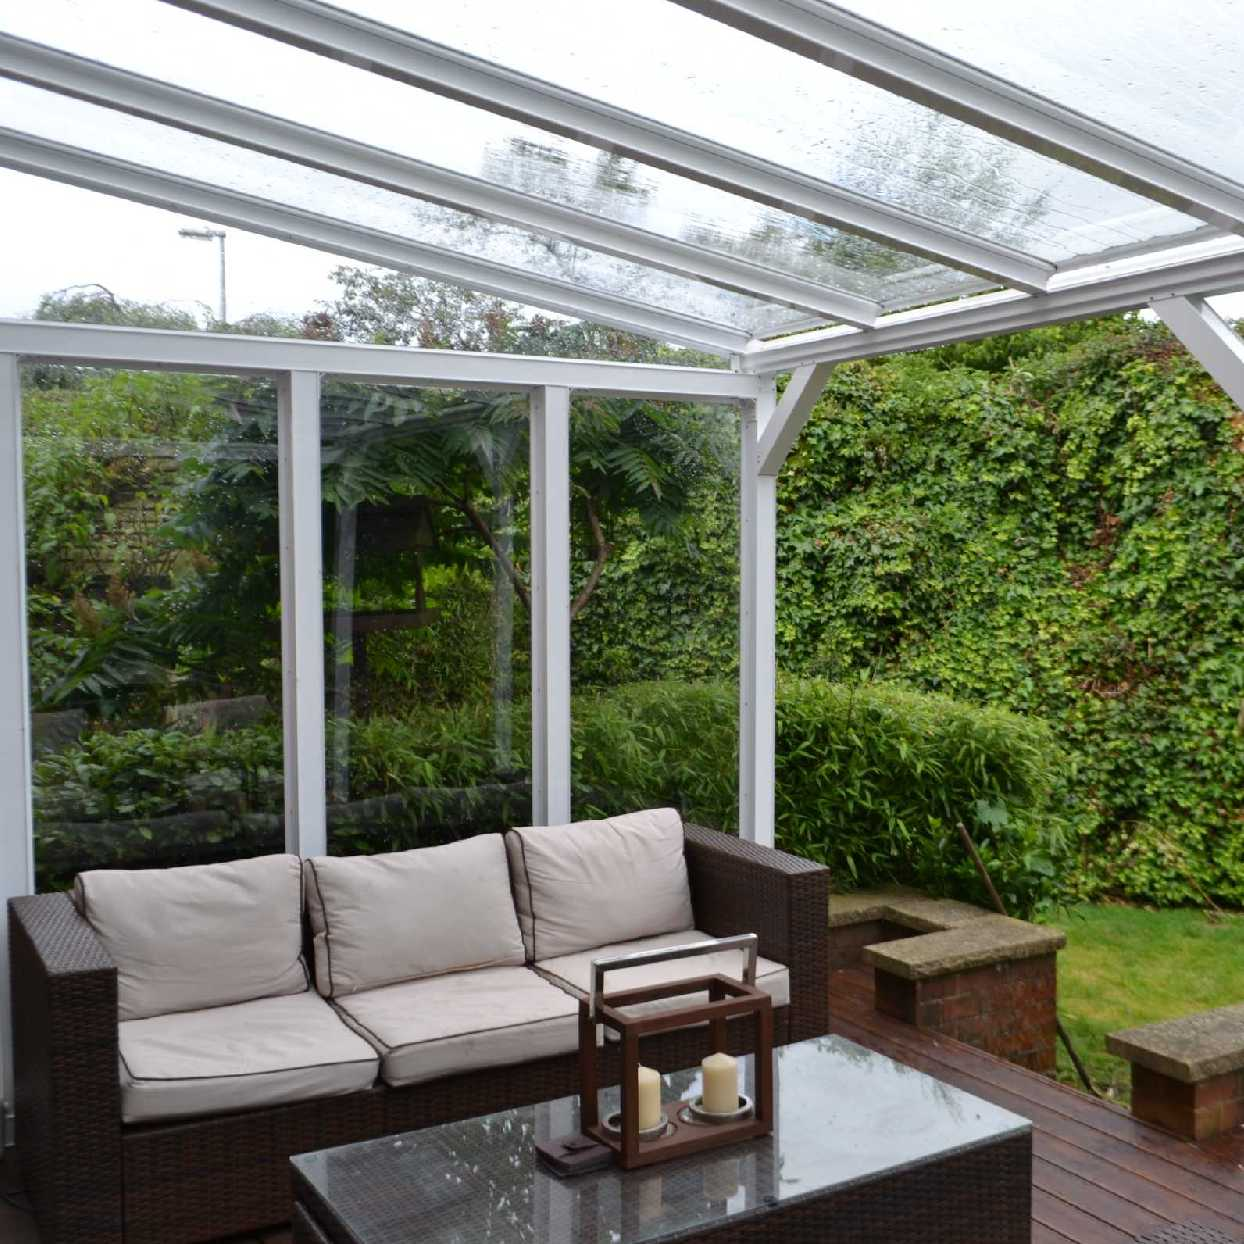 Omega Smart White Lean-To Canopy with 6mm Glass Clear Plate Polycarbonate Glazing - 8.4m (W) x 3.5m (P), (4) Supporting Posts